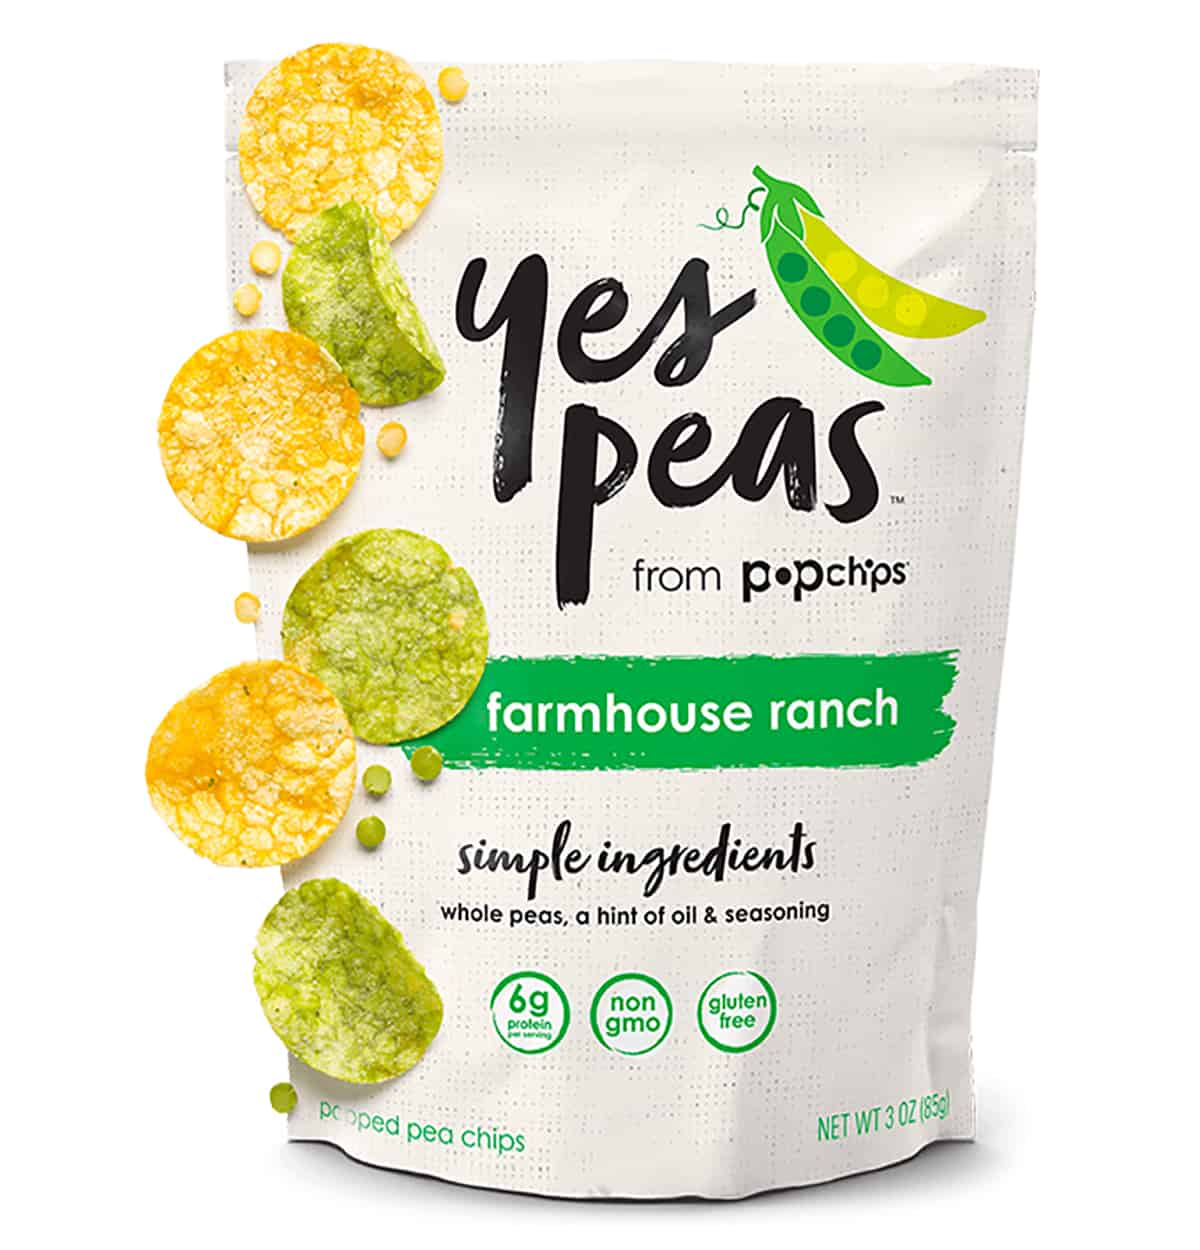 """A package of """"Yes Peas Pop Chips"""" as a healthy packaged snack."""